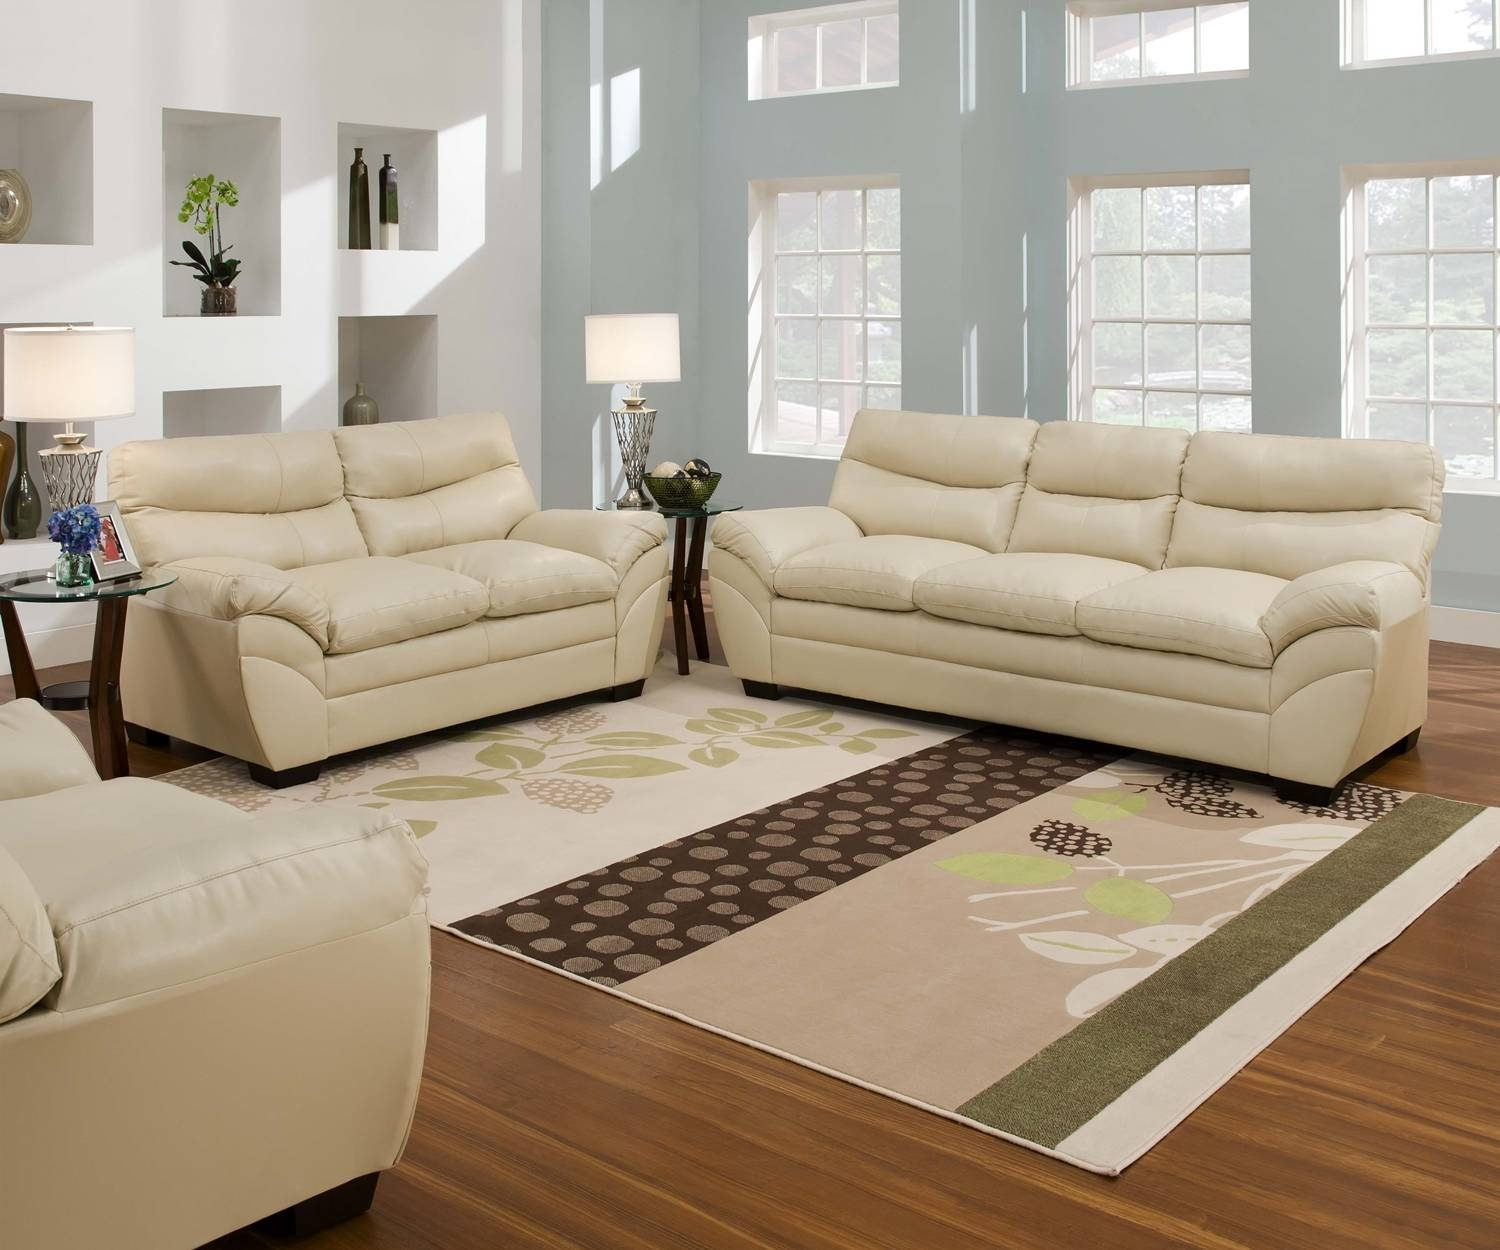 Cream Colored Living Room Furniture - Carameloffers pertaining to Cream Colored Sofas (Image 7 of 30)